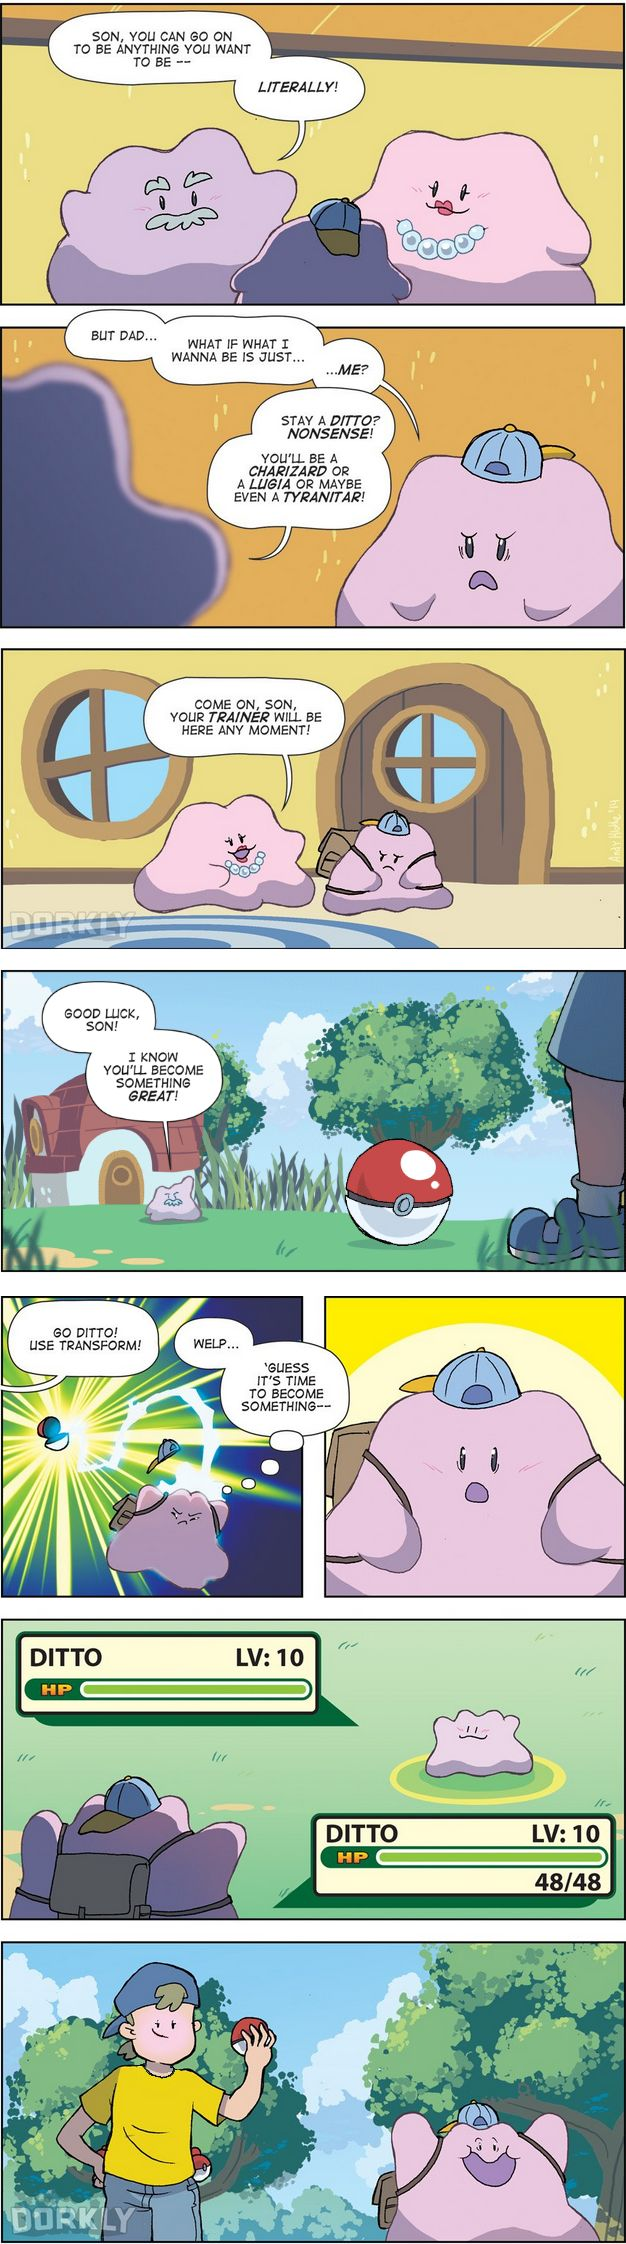 Ditto just wants to be himself